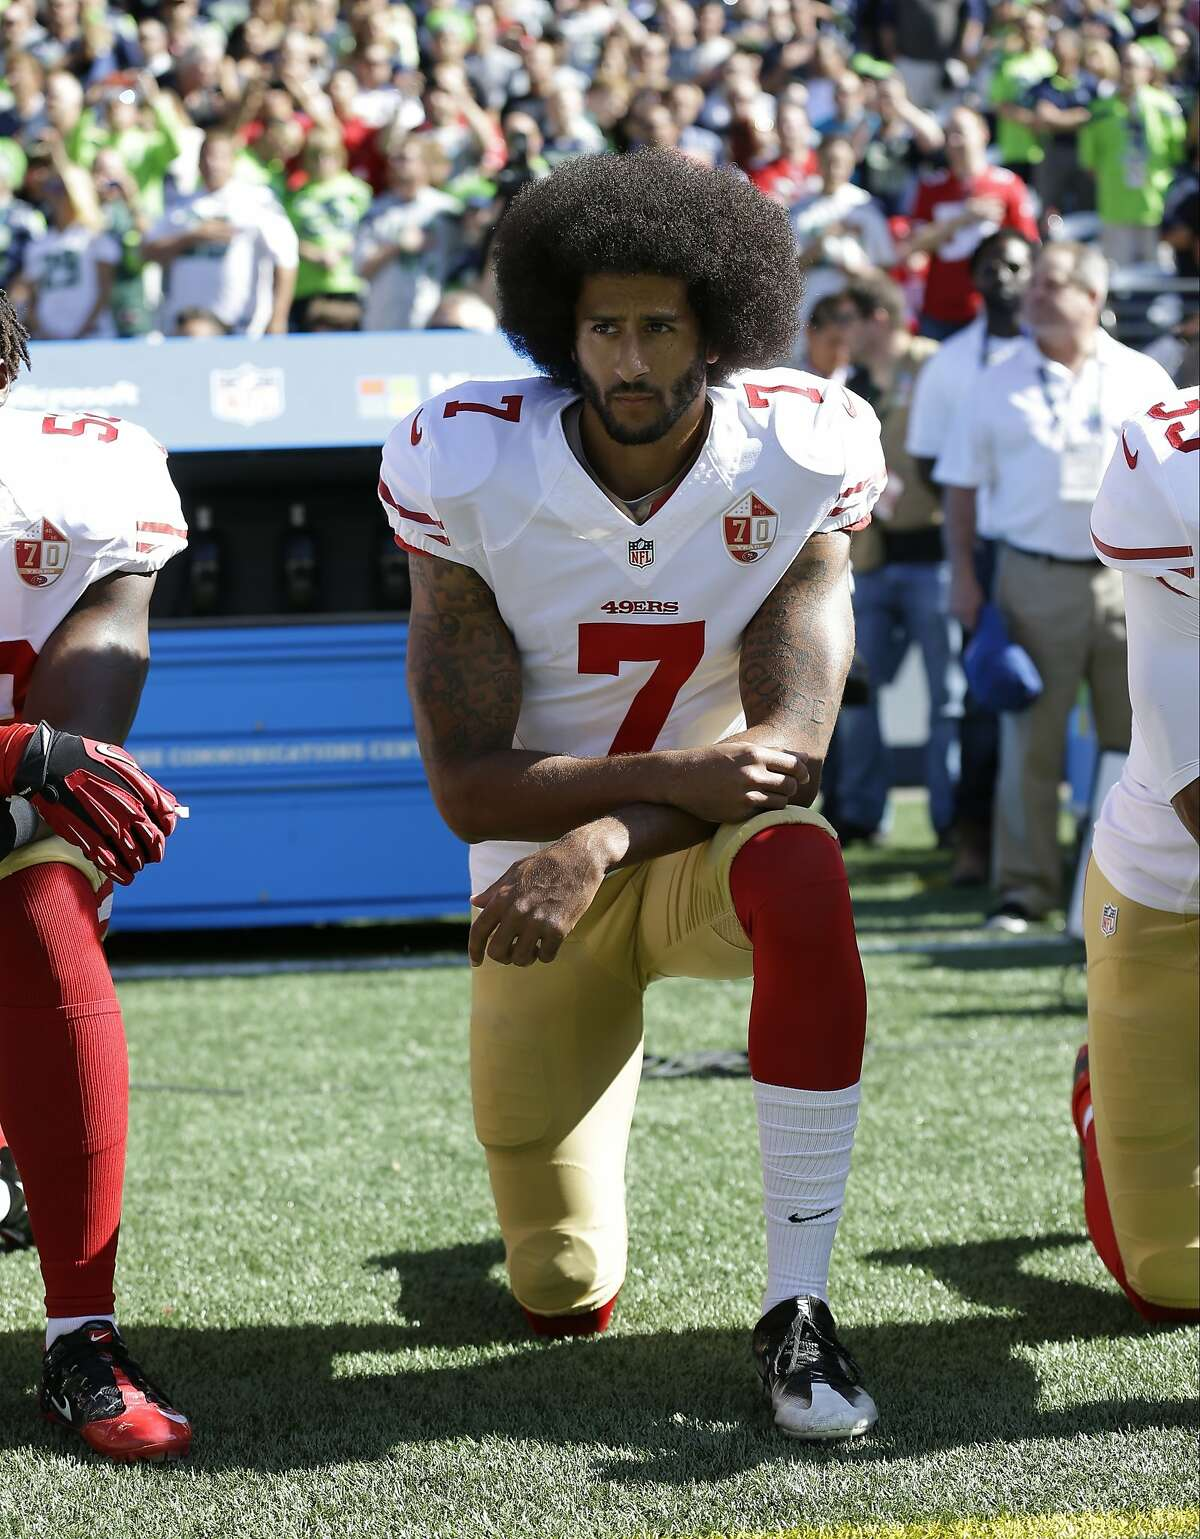 """FILE - In this Sept. 25, 2016, file photo, San Francisco 49ers' Colin Kaepernick kneels during the national anthem before an NFL football game against the Seattle Seahawks, in Seattle. Kaepernick has a new deal with Nike, even though the NFL does not want him. Kaepernick's attorney, Mark Geragos, made the announcement on Twitter, calling the former 49ers quarterback an """"All American Icon"""" and crediting attorney Ben Meiselas for getting the deal done. (AP Photo/Ted S. Warren, File)"""